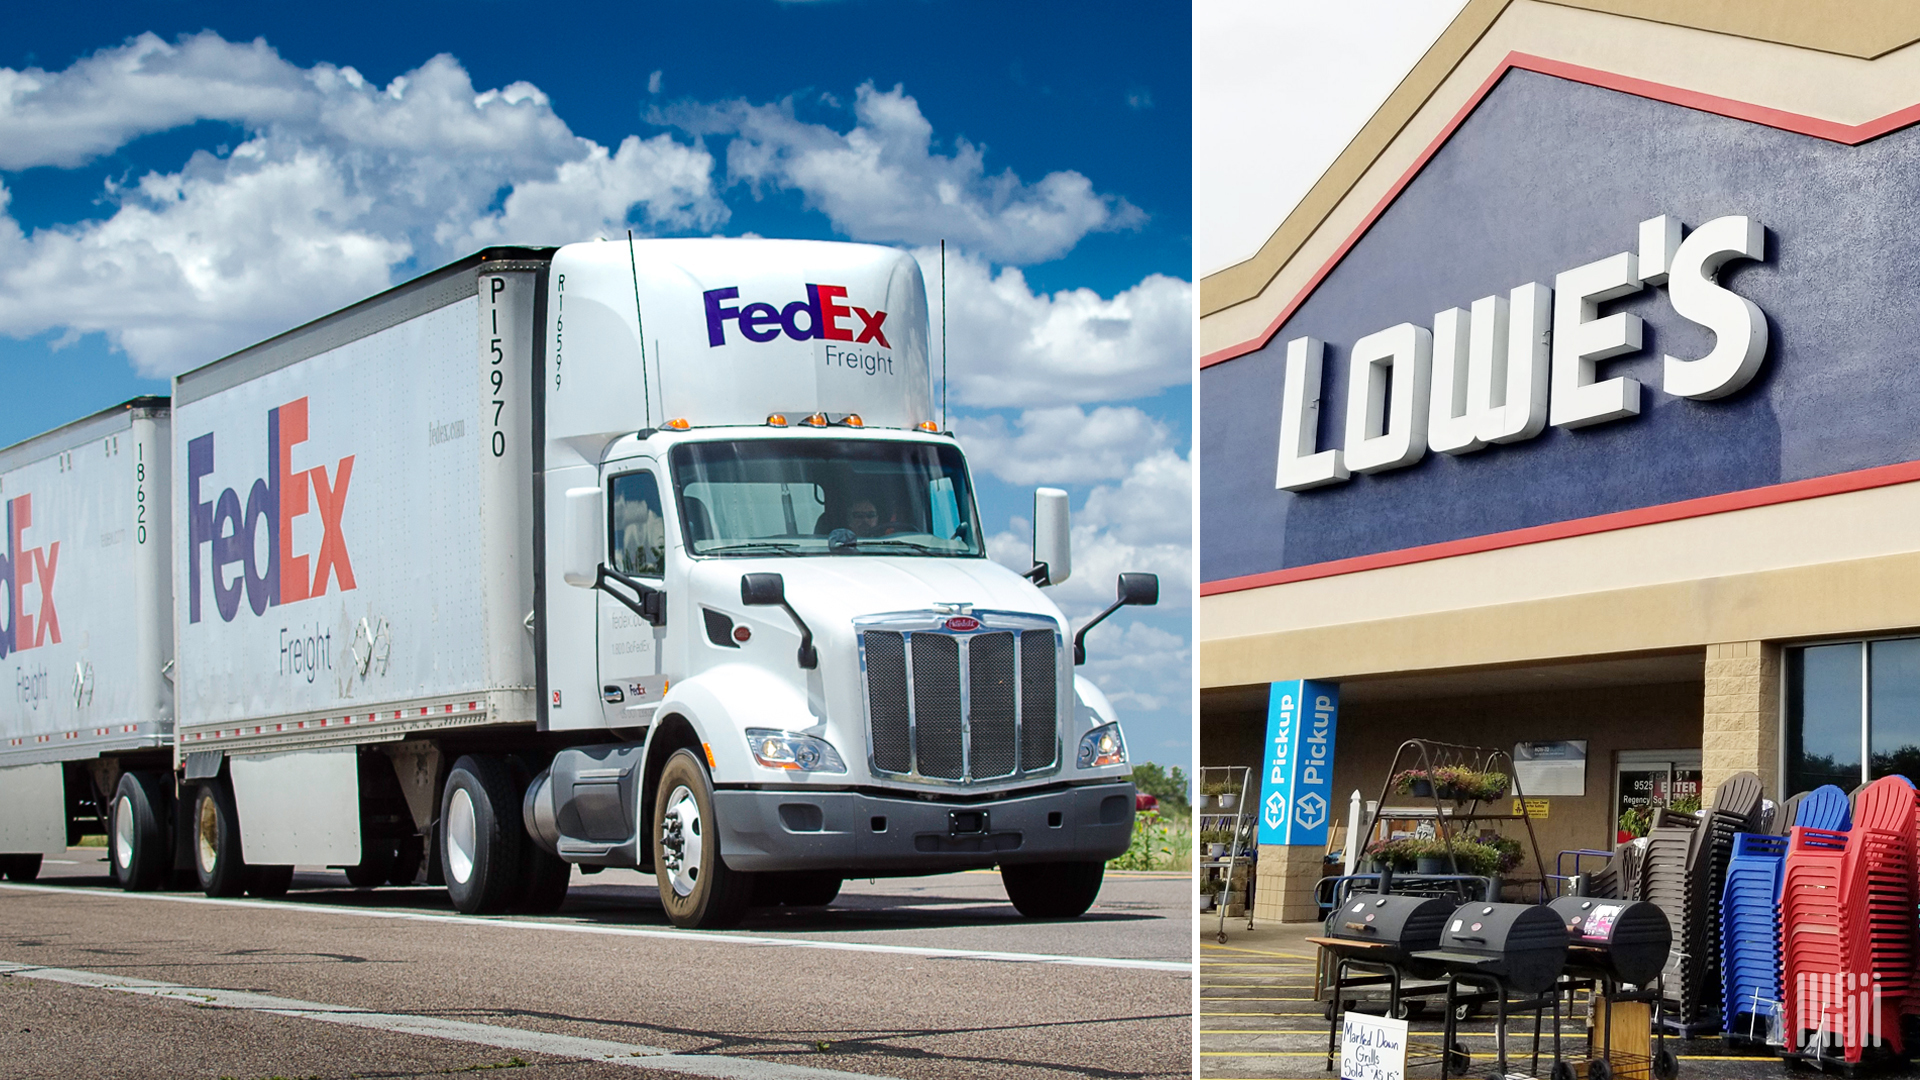 A FedEx tractor-trailer on left and a Lowe's store on the right.